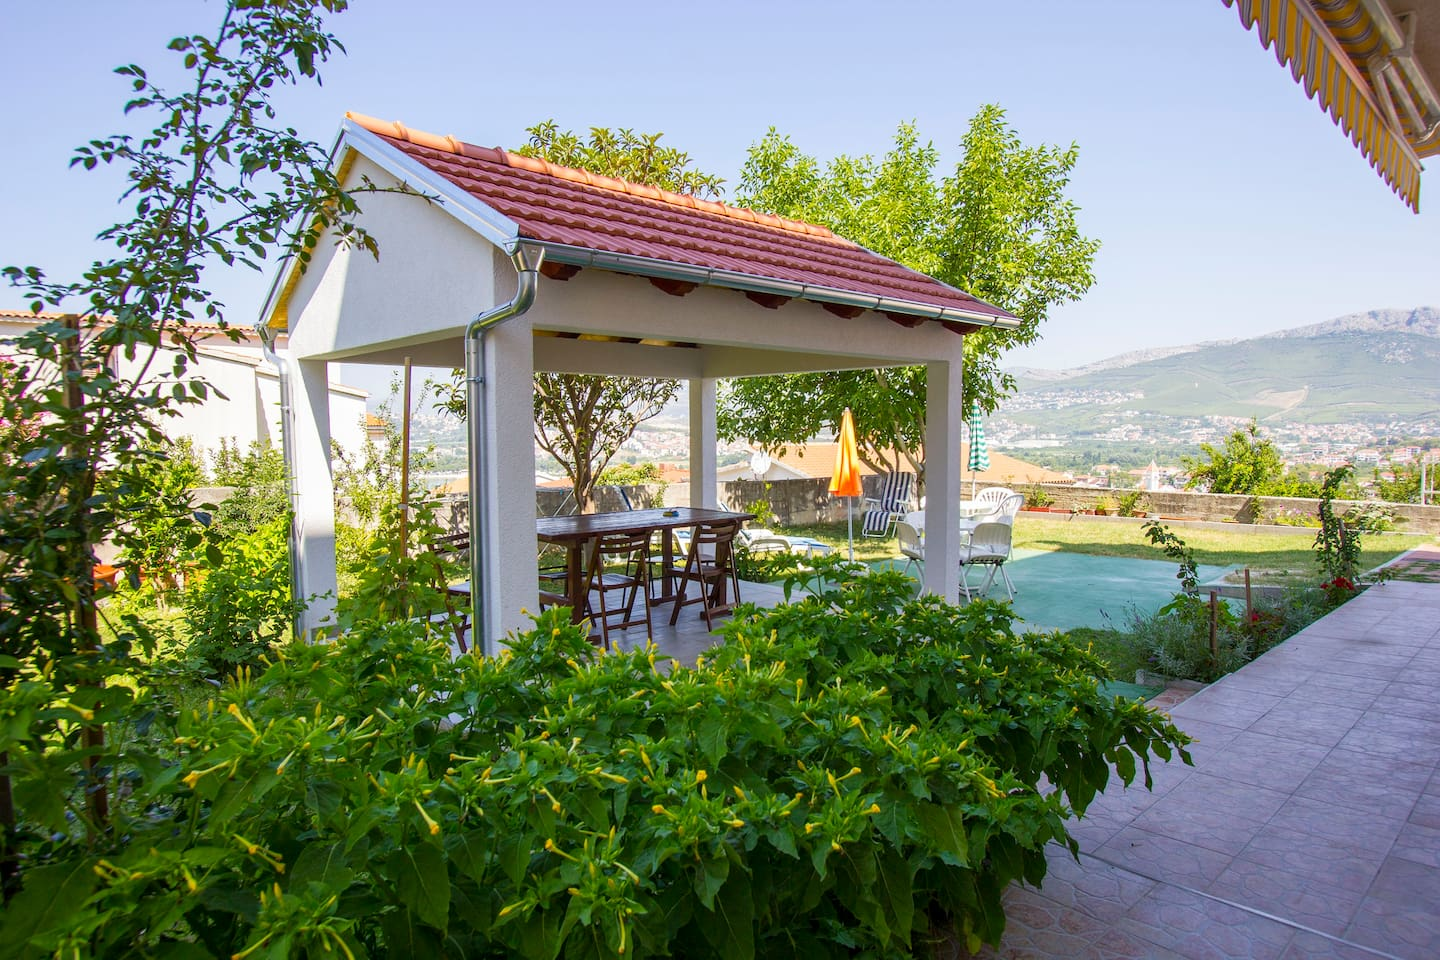 our big garden with table, chairs and barbecue where you can enjoy your meals and rest